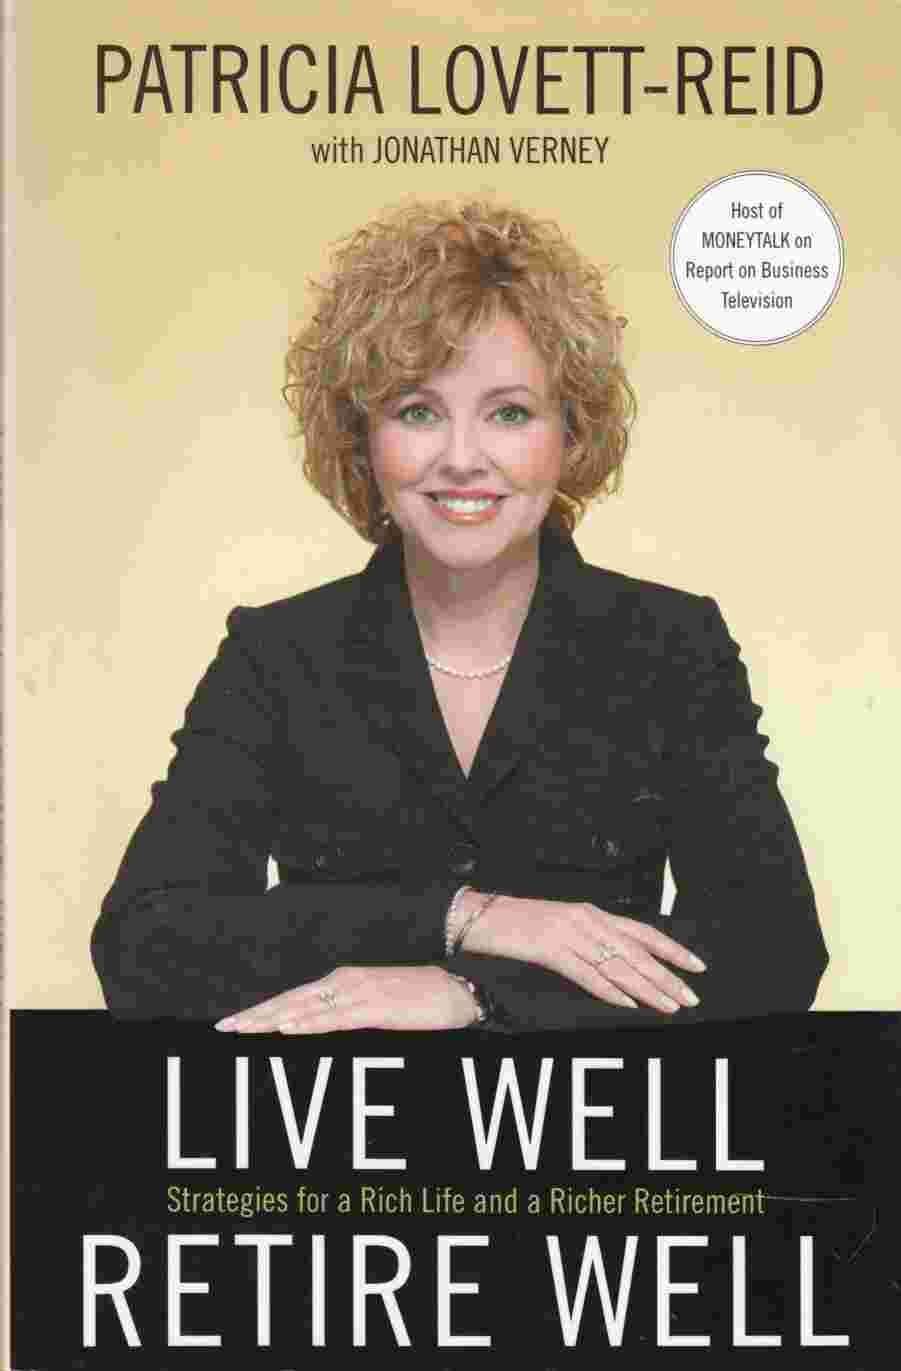 Image for Live Well Retire Well Strategies for a Rich Life and a Richer Retirement